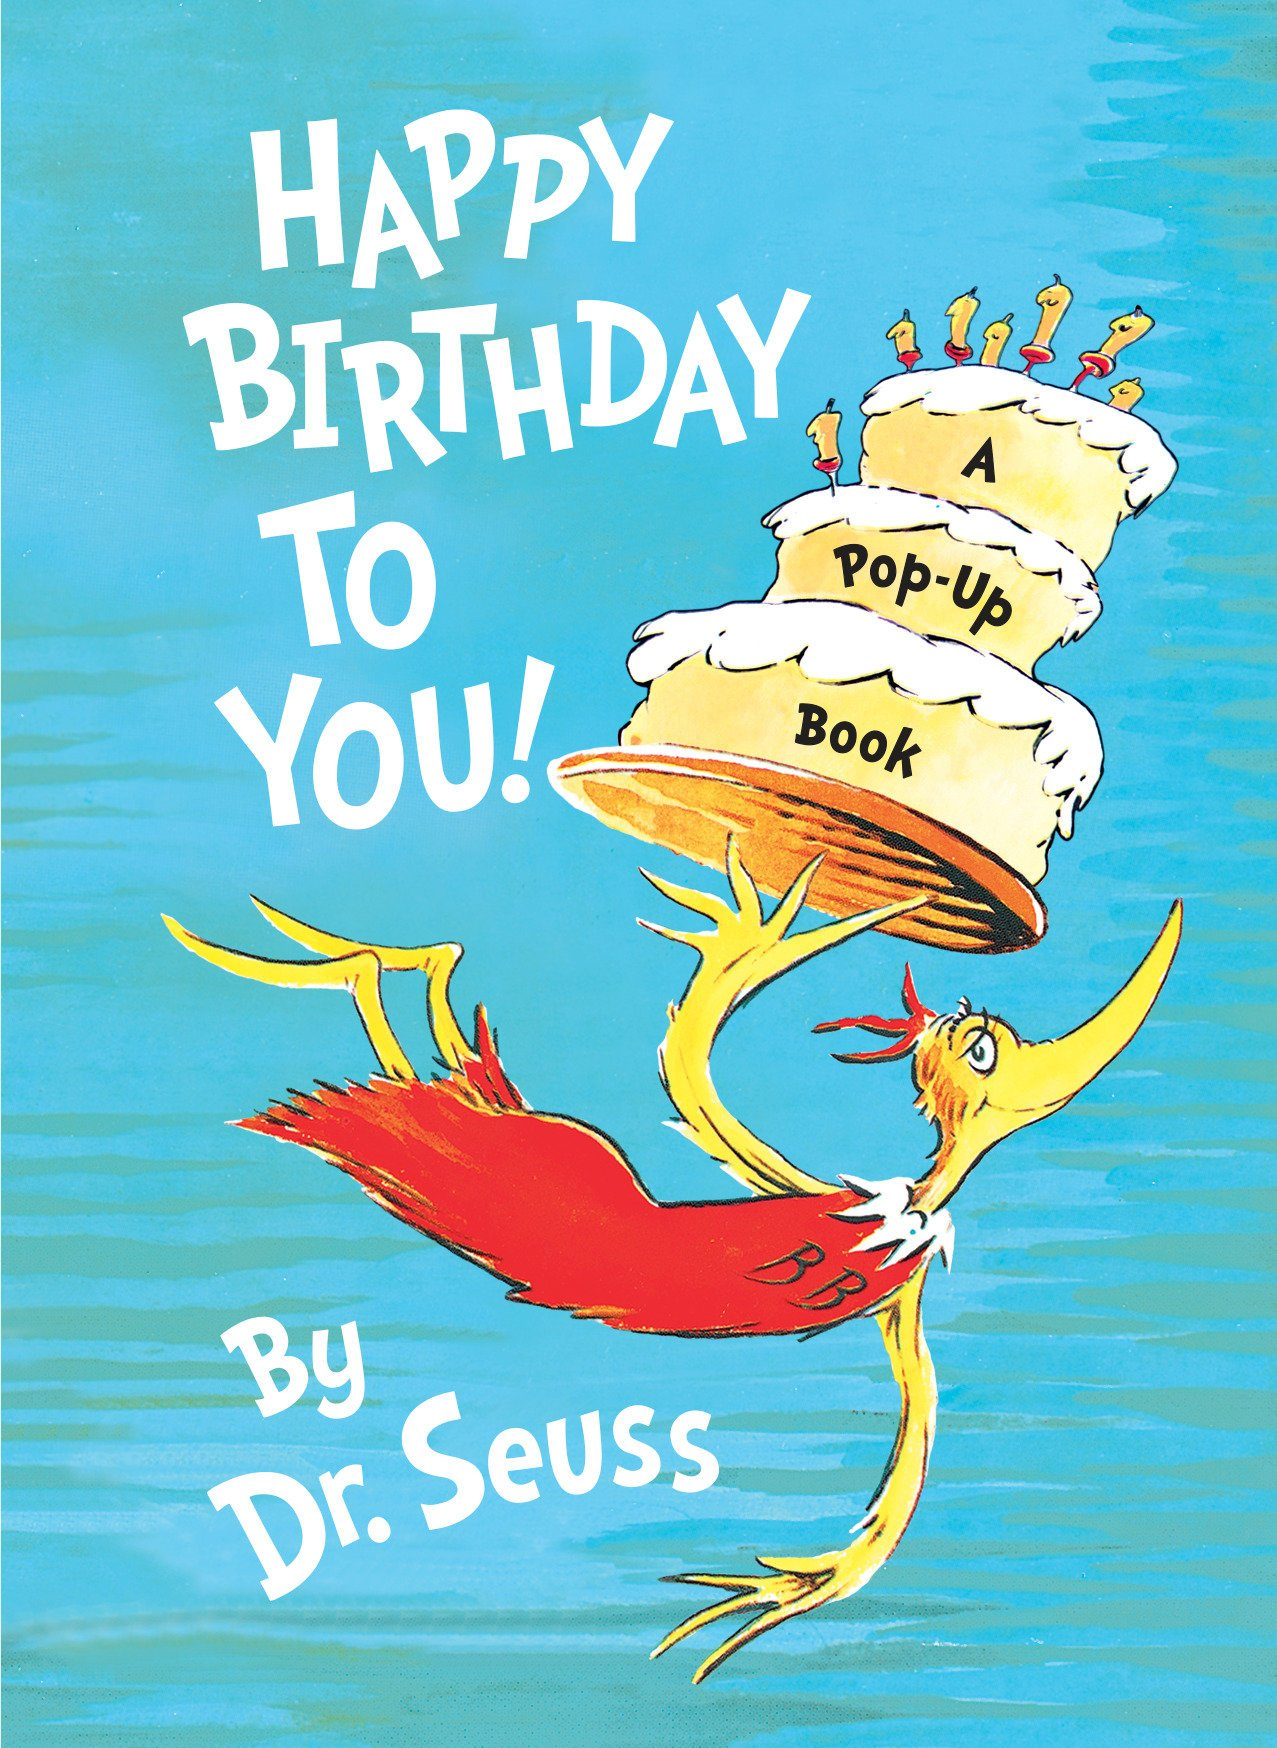 photo regarding Dr.seuss Book Covers Printable named Delighted Birthday toward Yourself! (Mini Pops): Dr. Seuss: 9780375823114